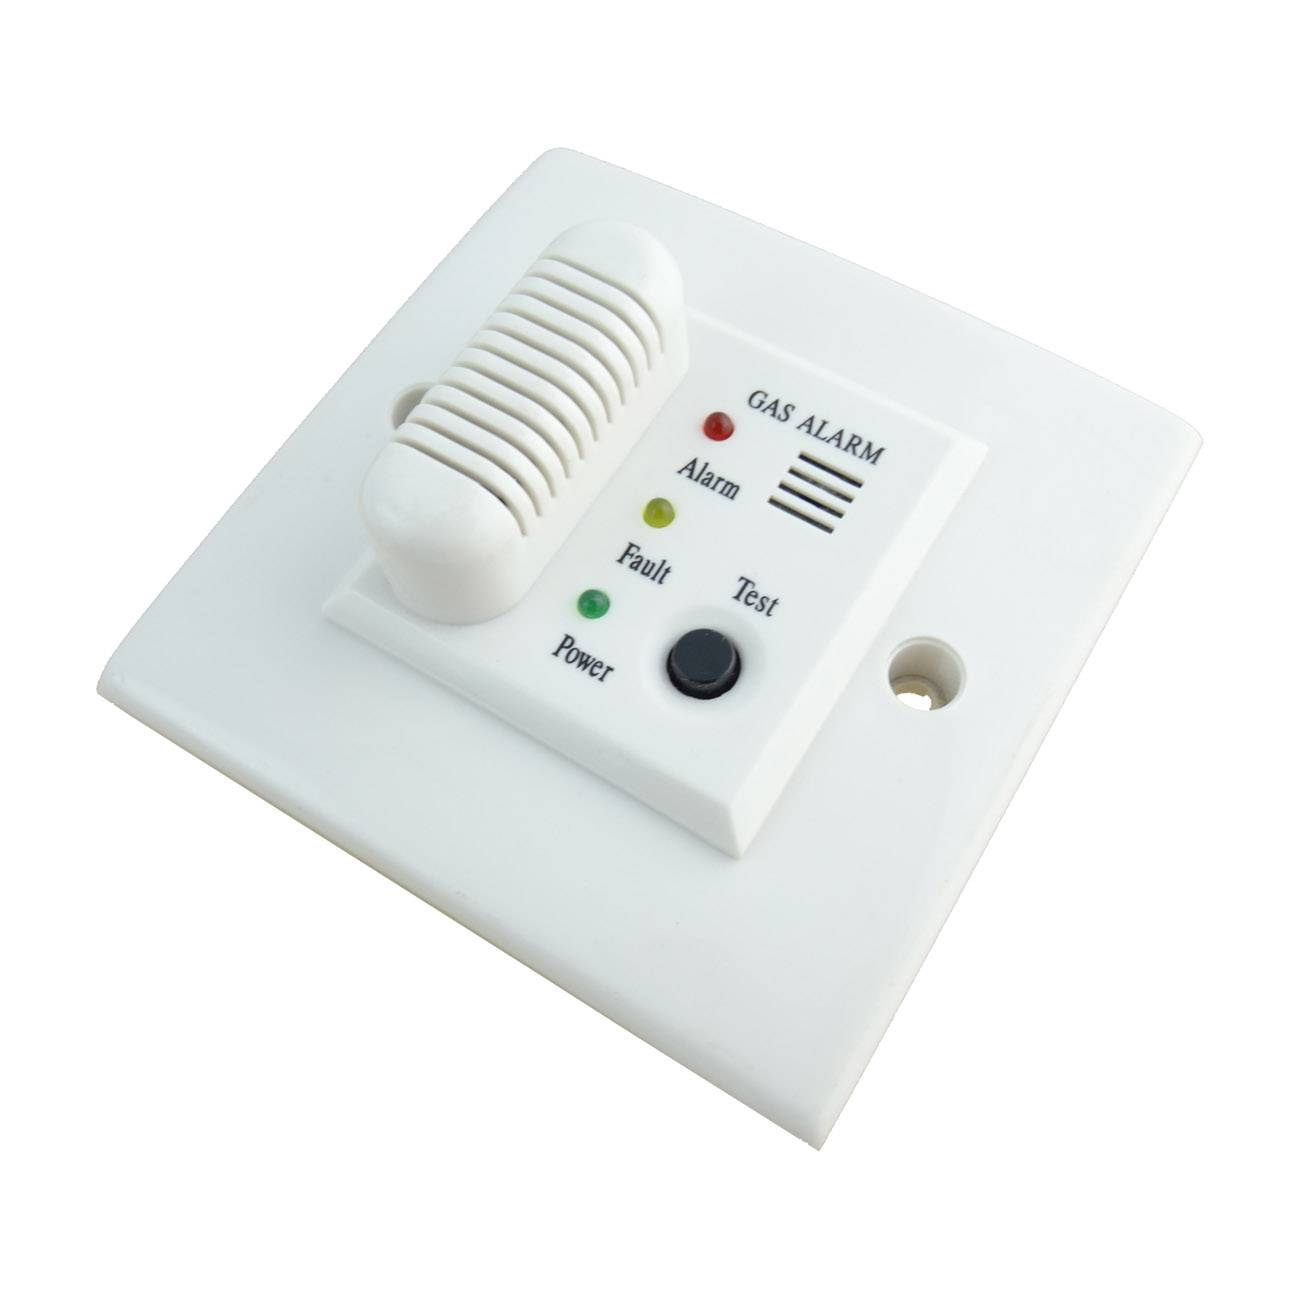 Combustible Gas Leak Detector Sensor Testers Fire Alarm for home Control Systems